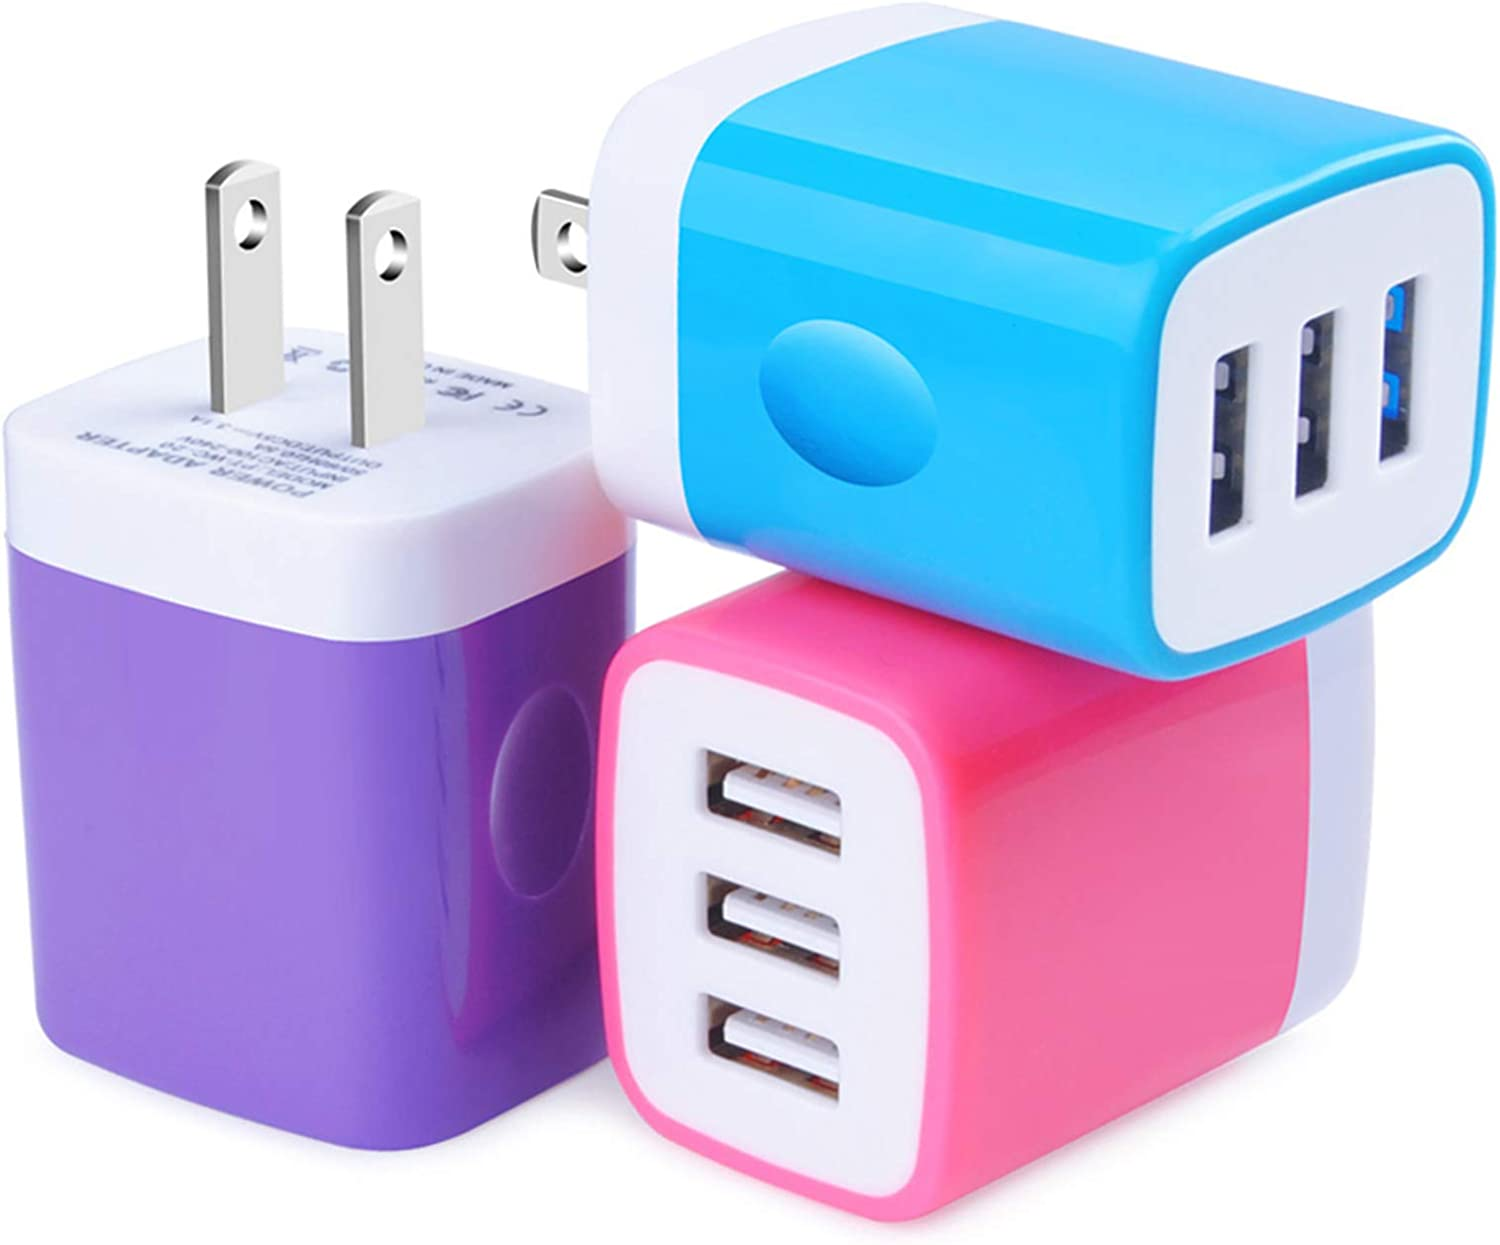 USB Wall Charger MultiPort, Hootek 3Pack Wall Charger Block 3.1A Muti Port USB Charger Adapter Power Cube Charging Plug Box Compatible iPhone 11/XS/XR/8/7/6S Plus, iPad, Samsung Note20, LG, HTC, Moto